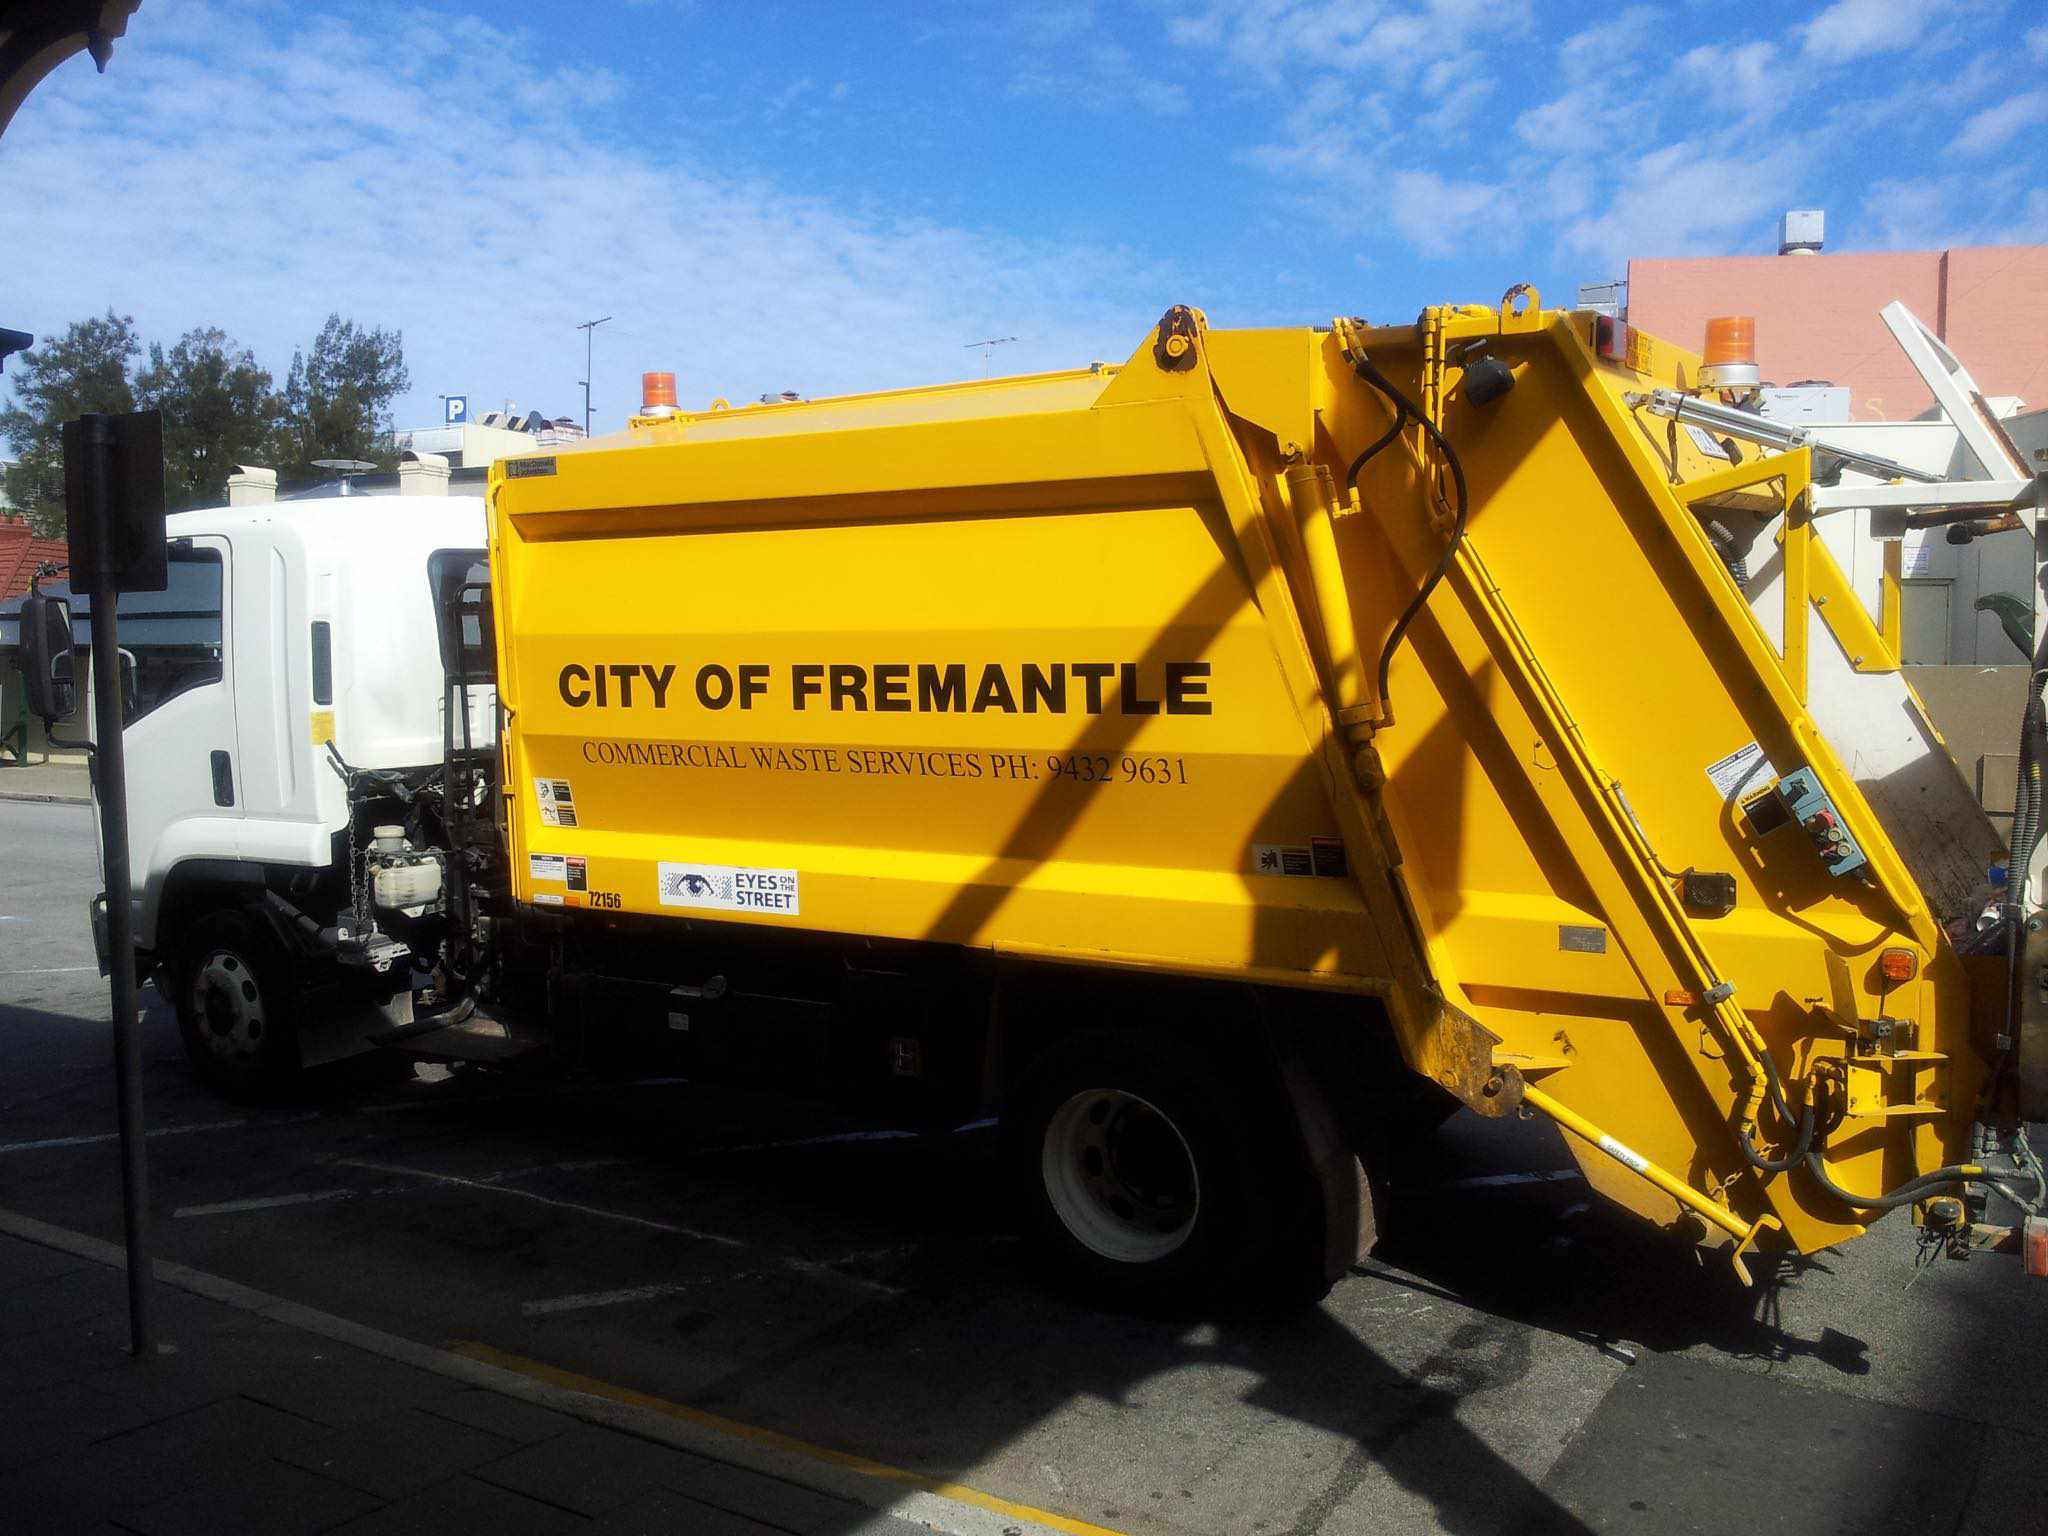 City_of_Fremantle_rubbish_truck_2012